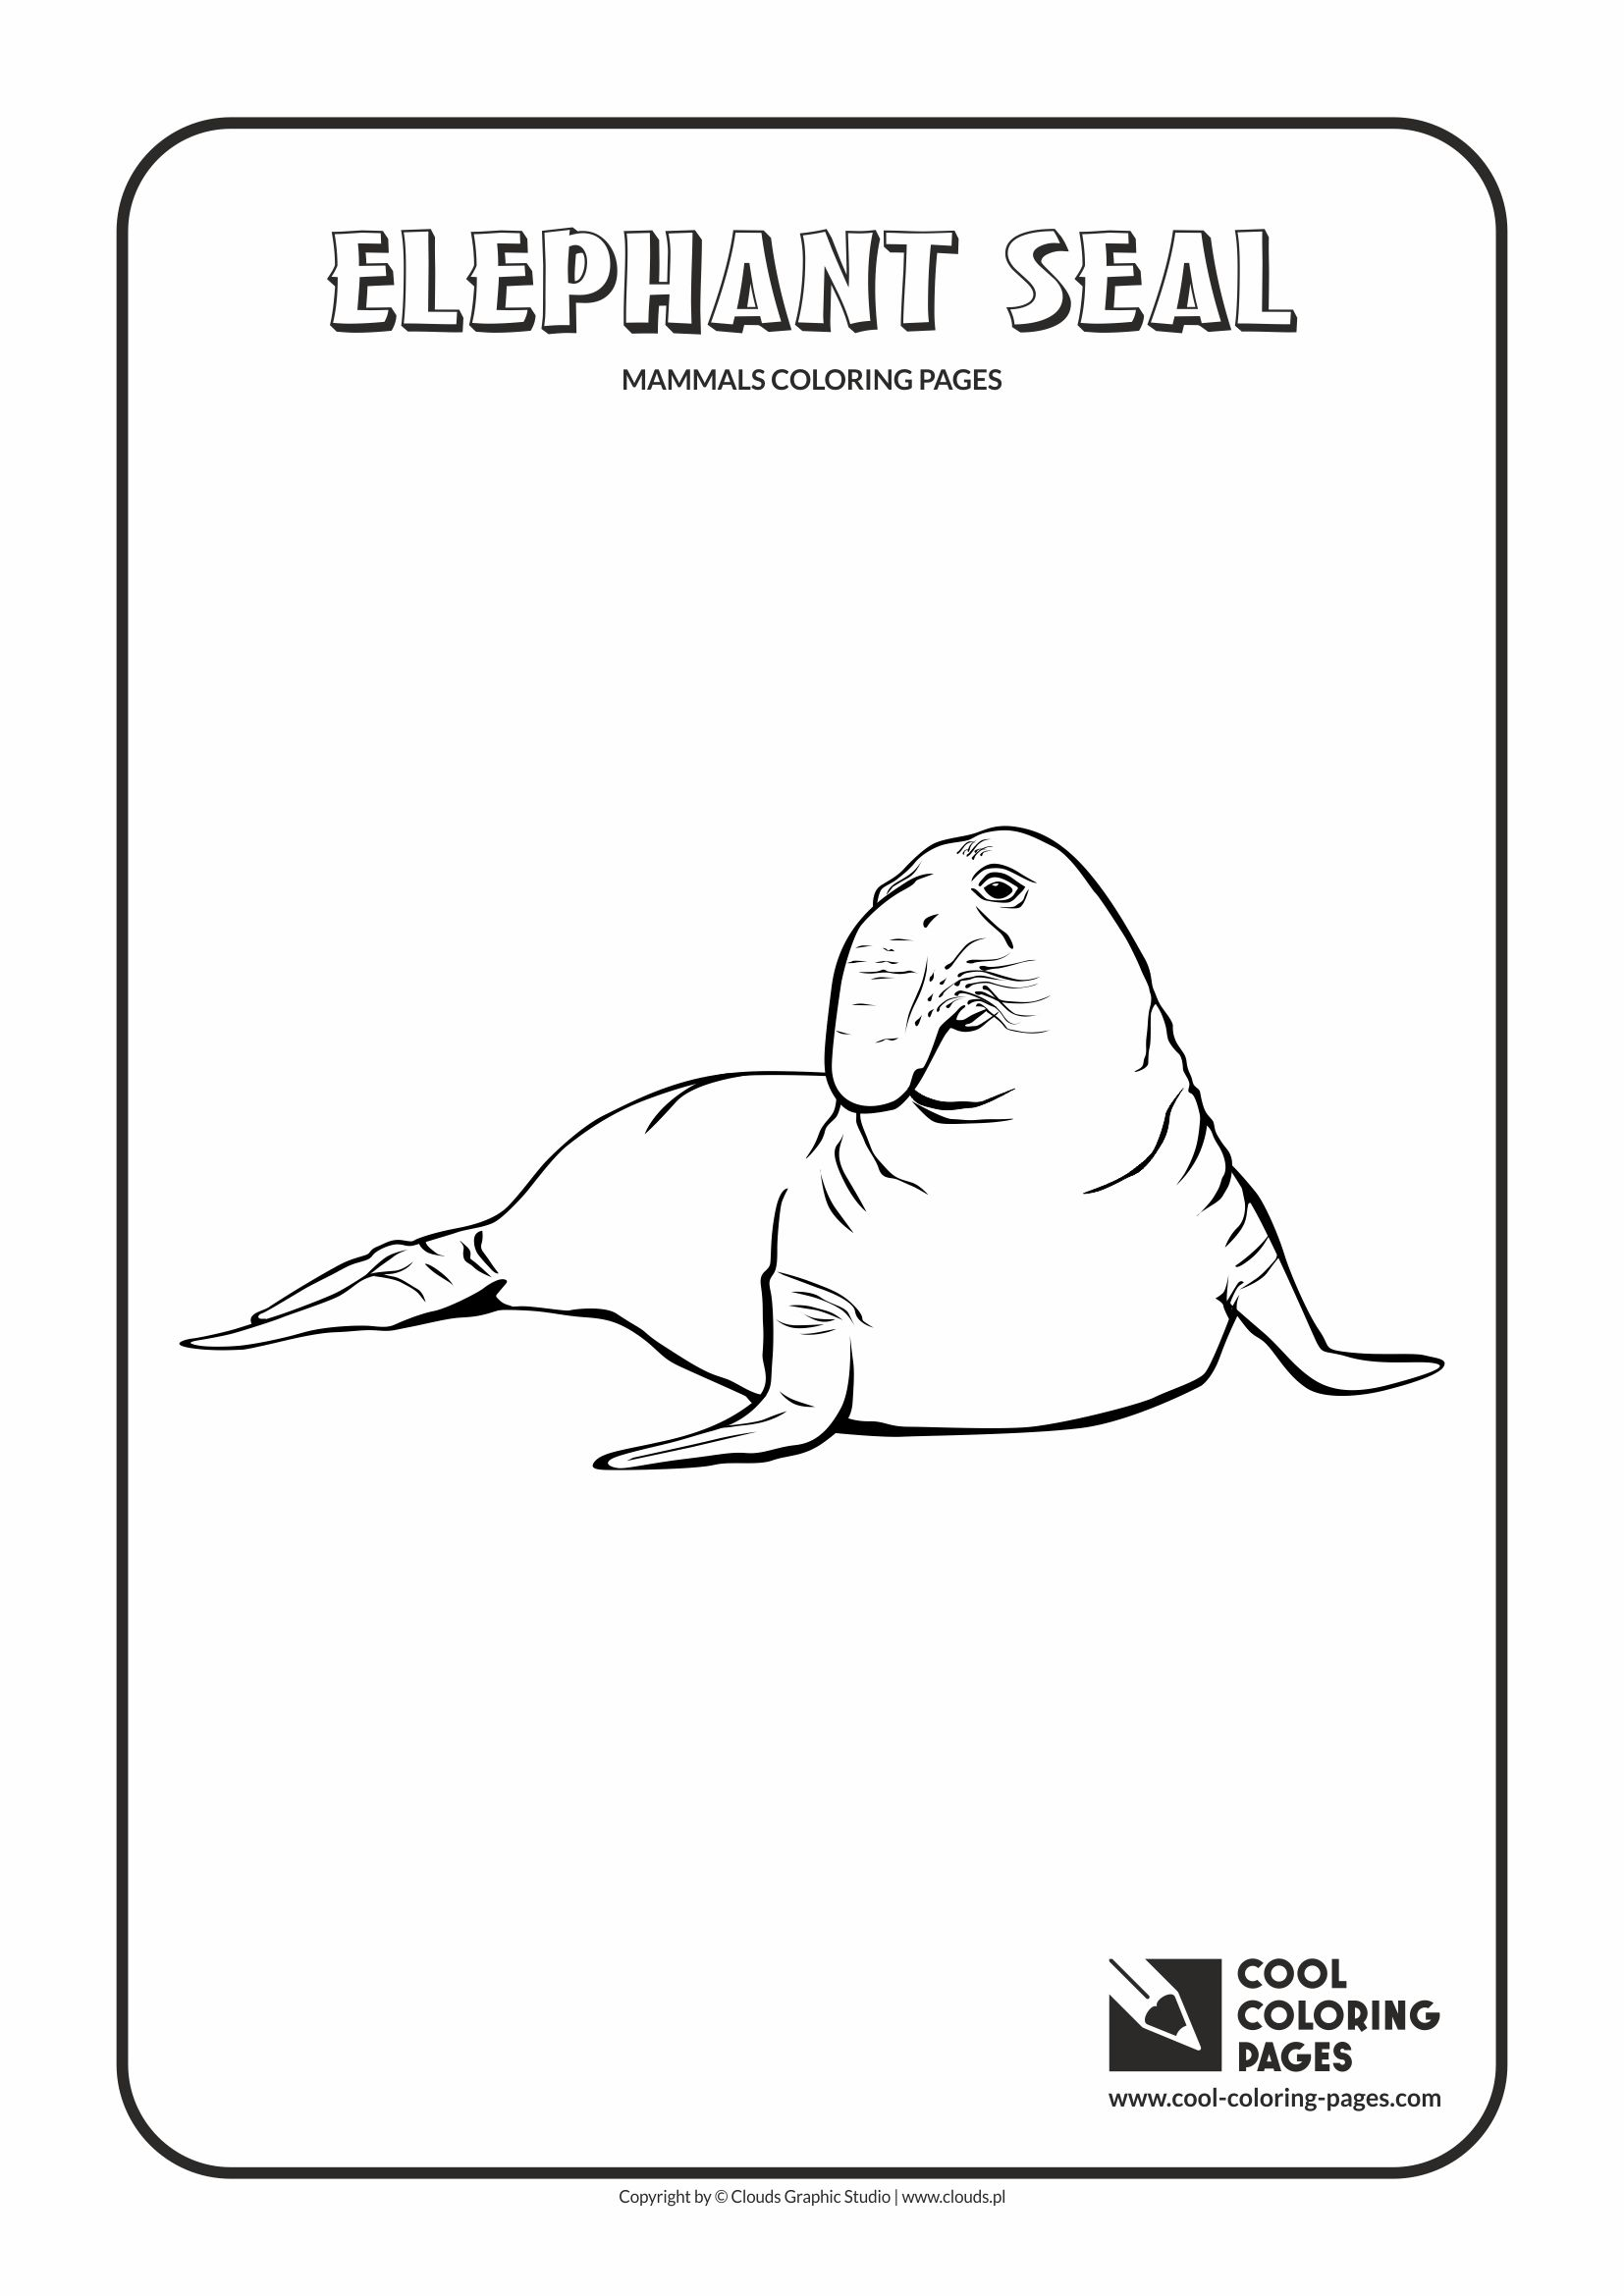 Santa Fe Coloring Pages With Cool Elephant Seal Page